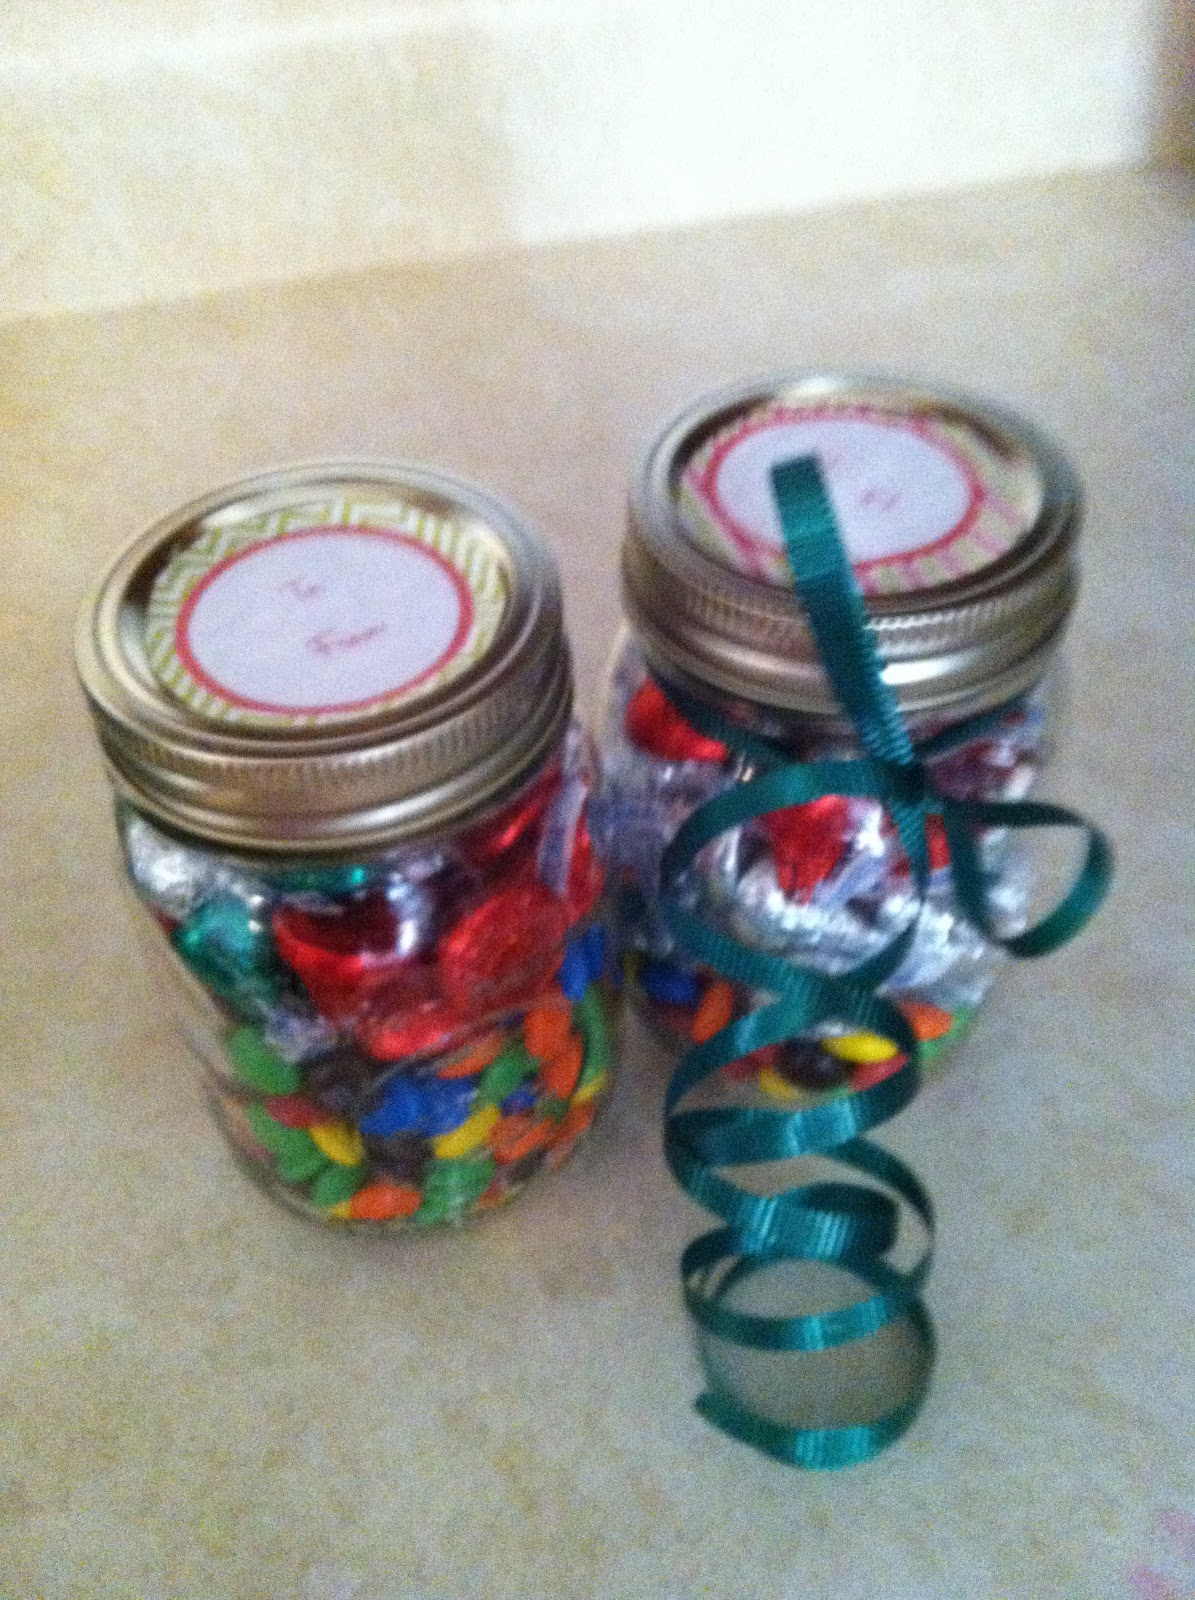 Our Family Of Four Homemade Christmas Gift Ideas